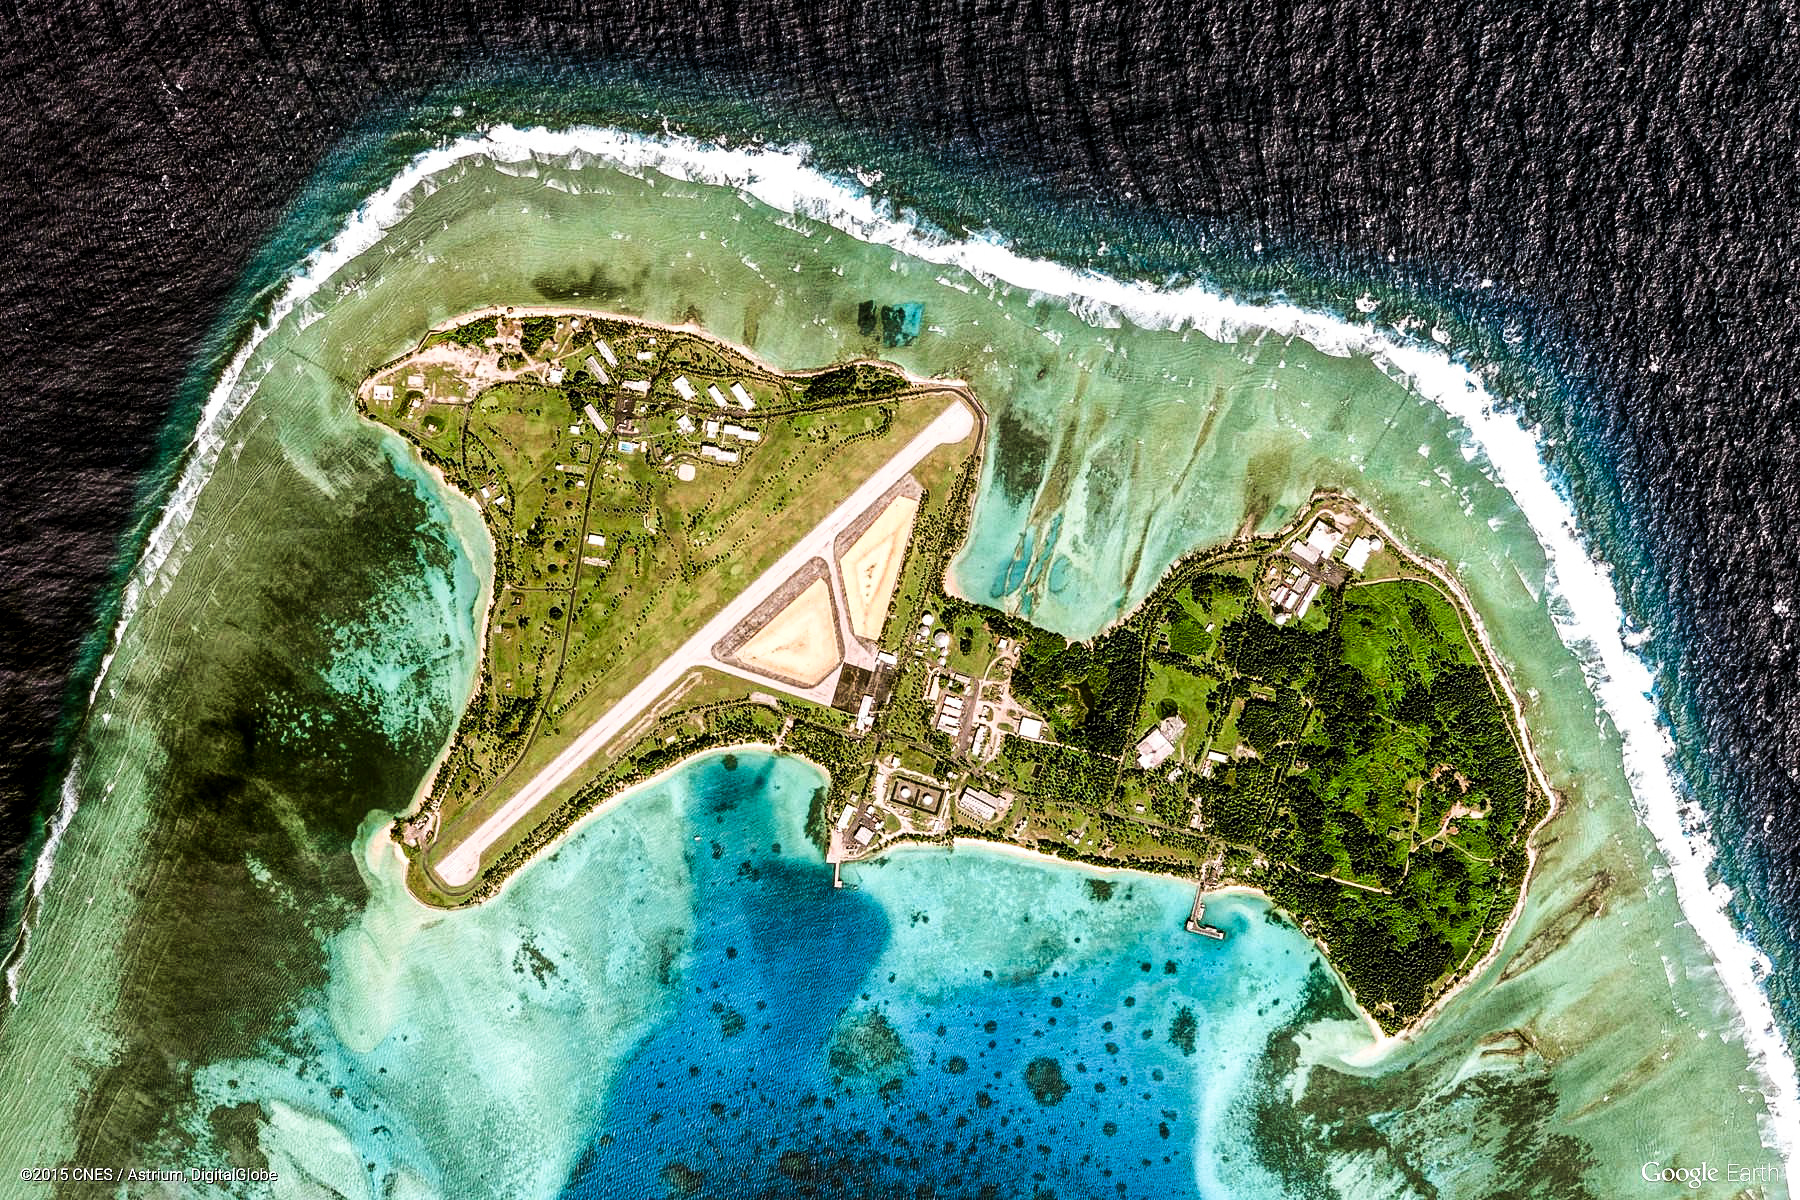 In the Marshall Islands Australia supports preparation for the impacts of severe climate and oceanographic events through the Climate and Oceans Support Program in the Pacific.